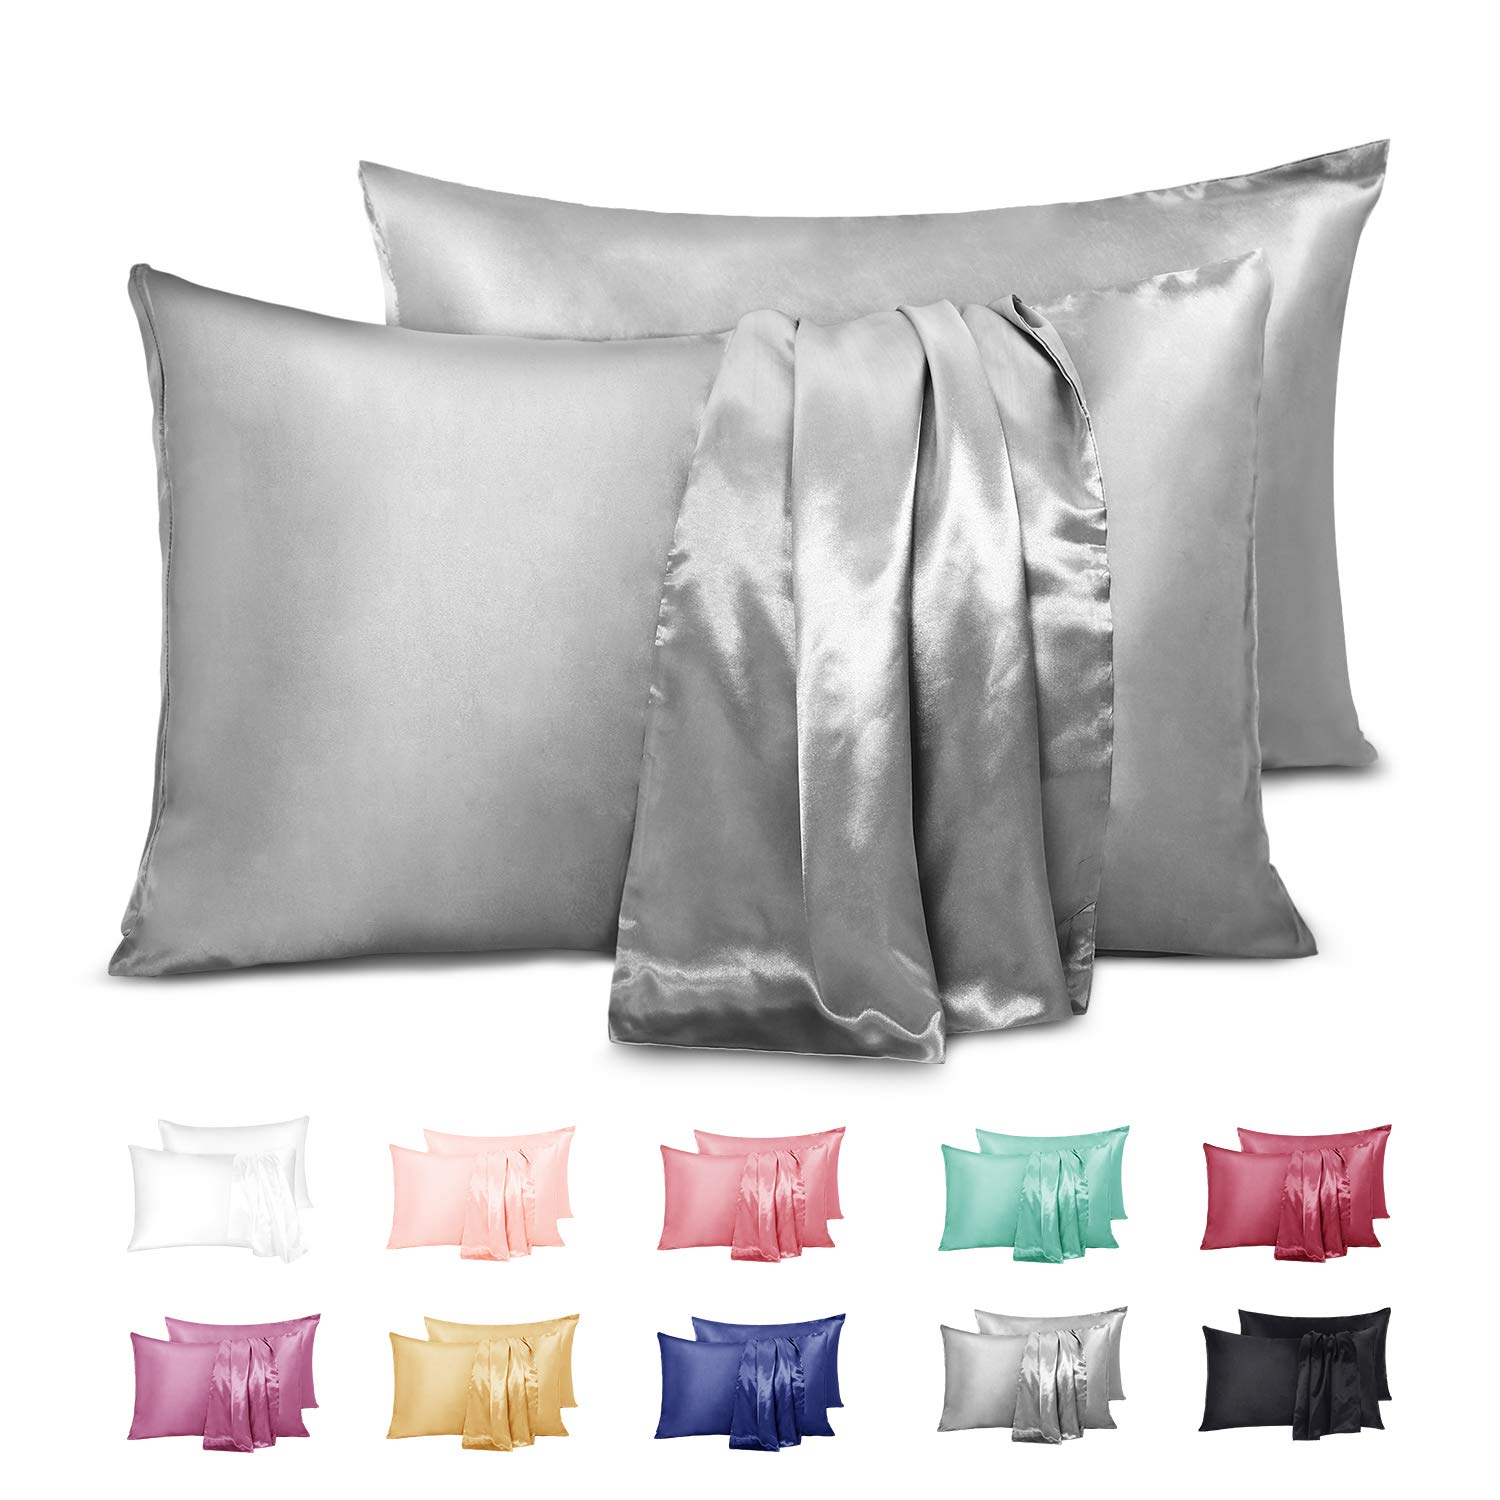 Duerer Satin Pillowcase 2 Pack for Hair and Skin, Soft Pillow Cases Covers with Envelope Closure, Standard/Queen/King Size(20''x30'',Gray)